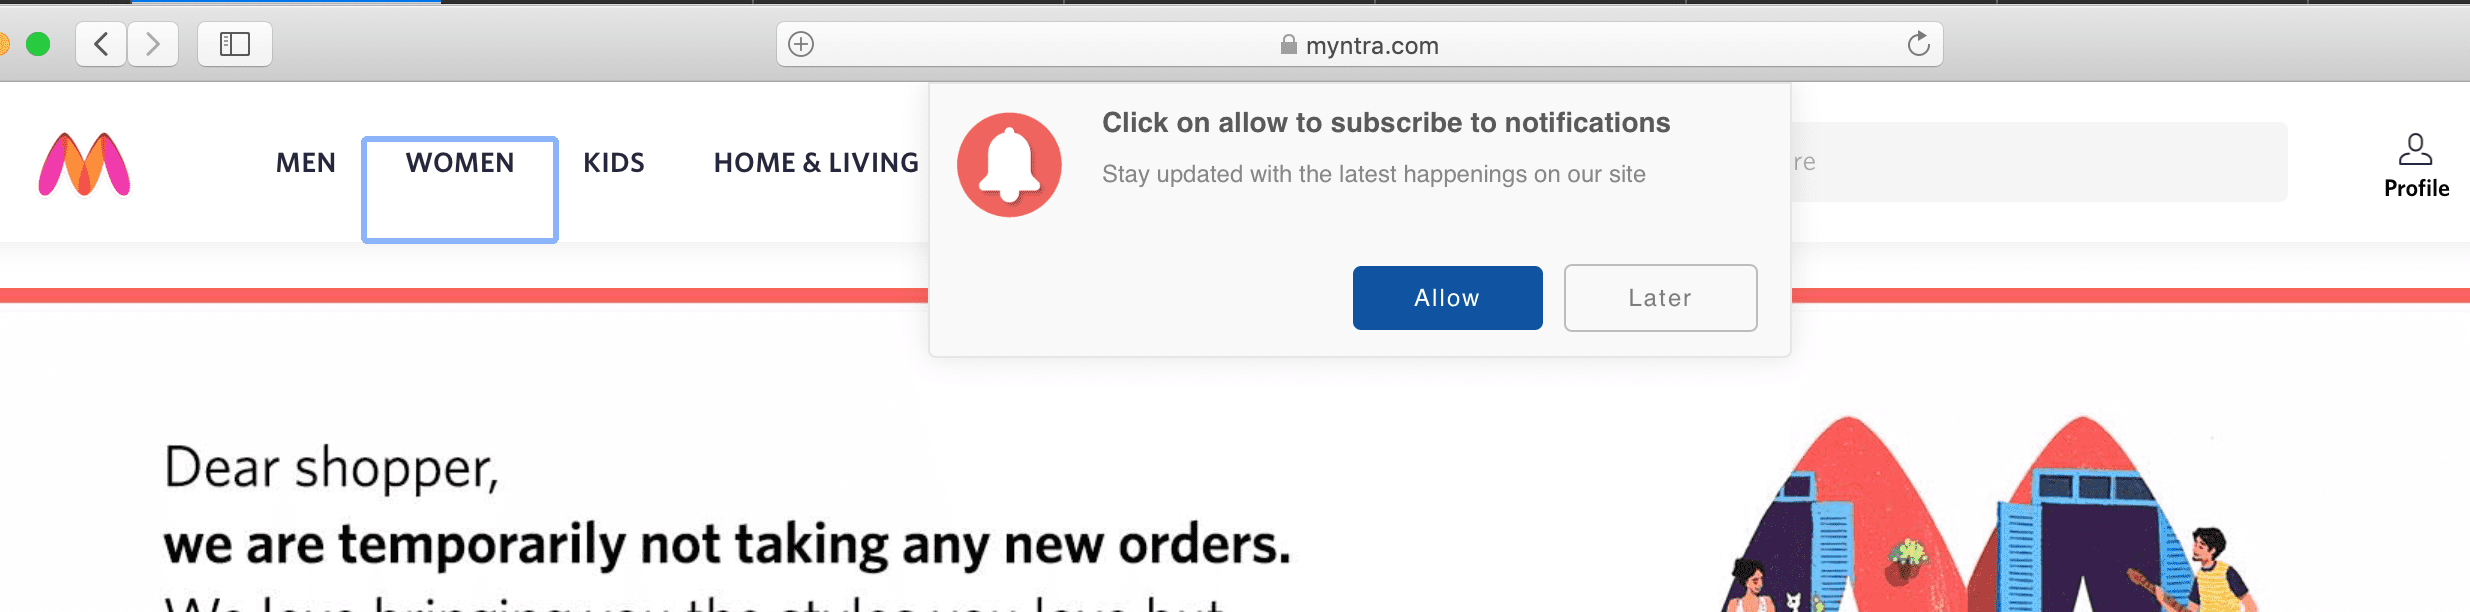 Myntra Subscribe to web notification pop-up